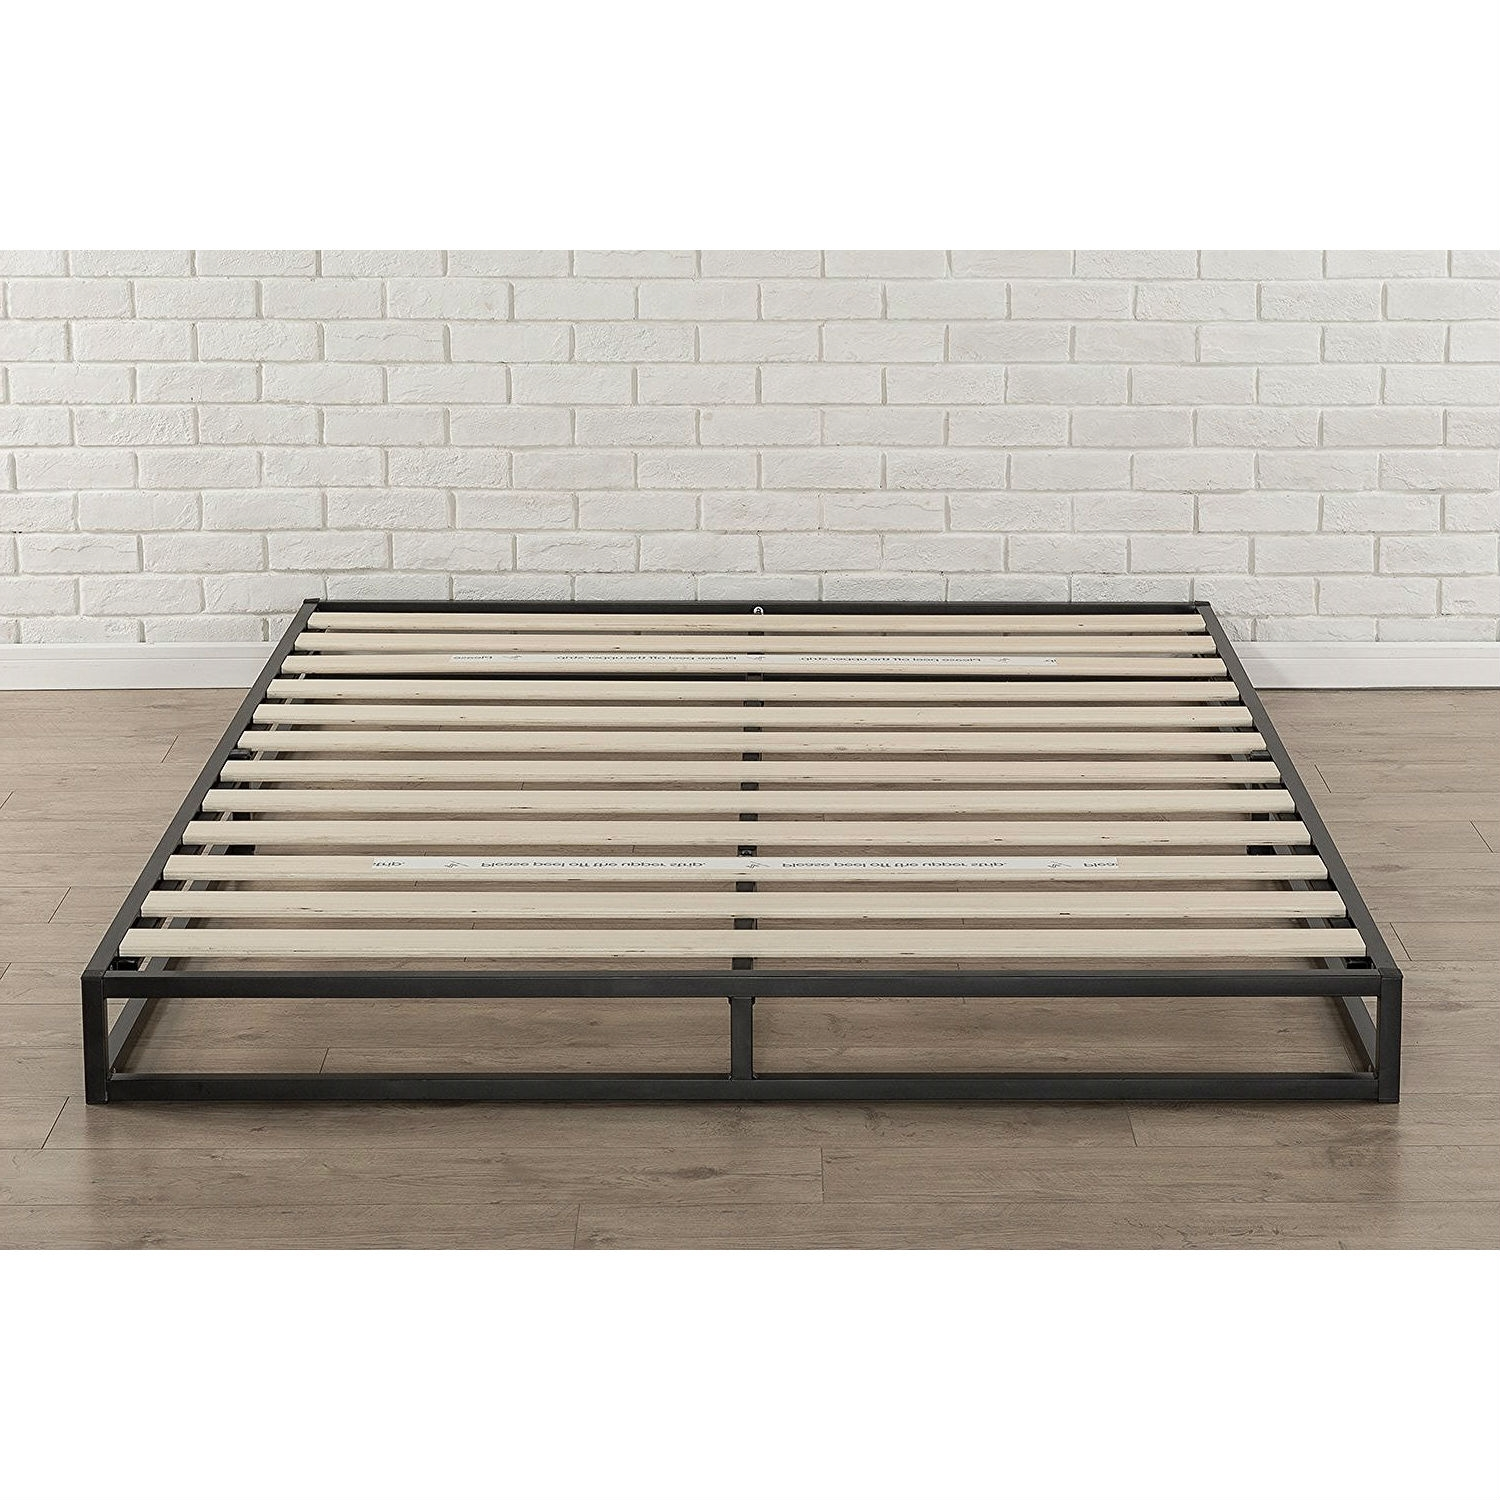 Queen Size Low Bed Part - 40: Full Size 6-inch Low Profile Metal Platform Bed Frame With Wooden Slats